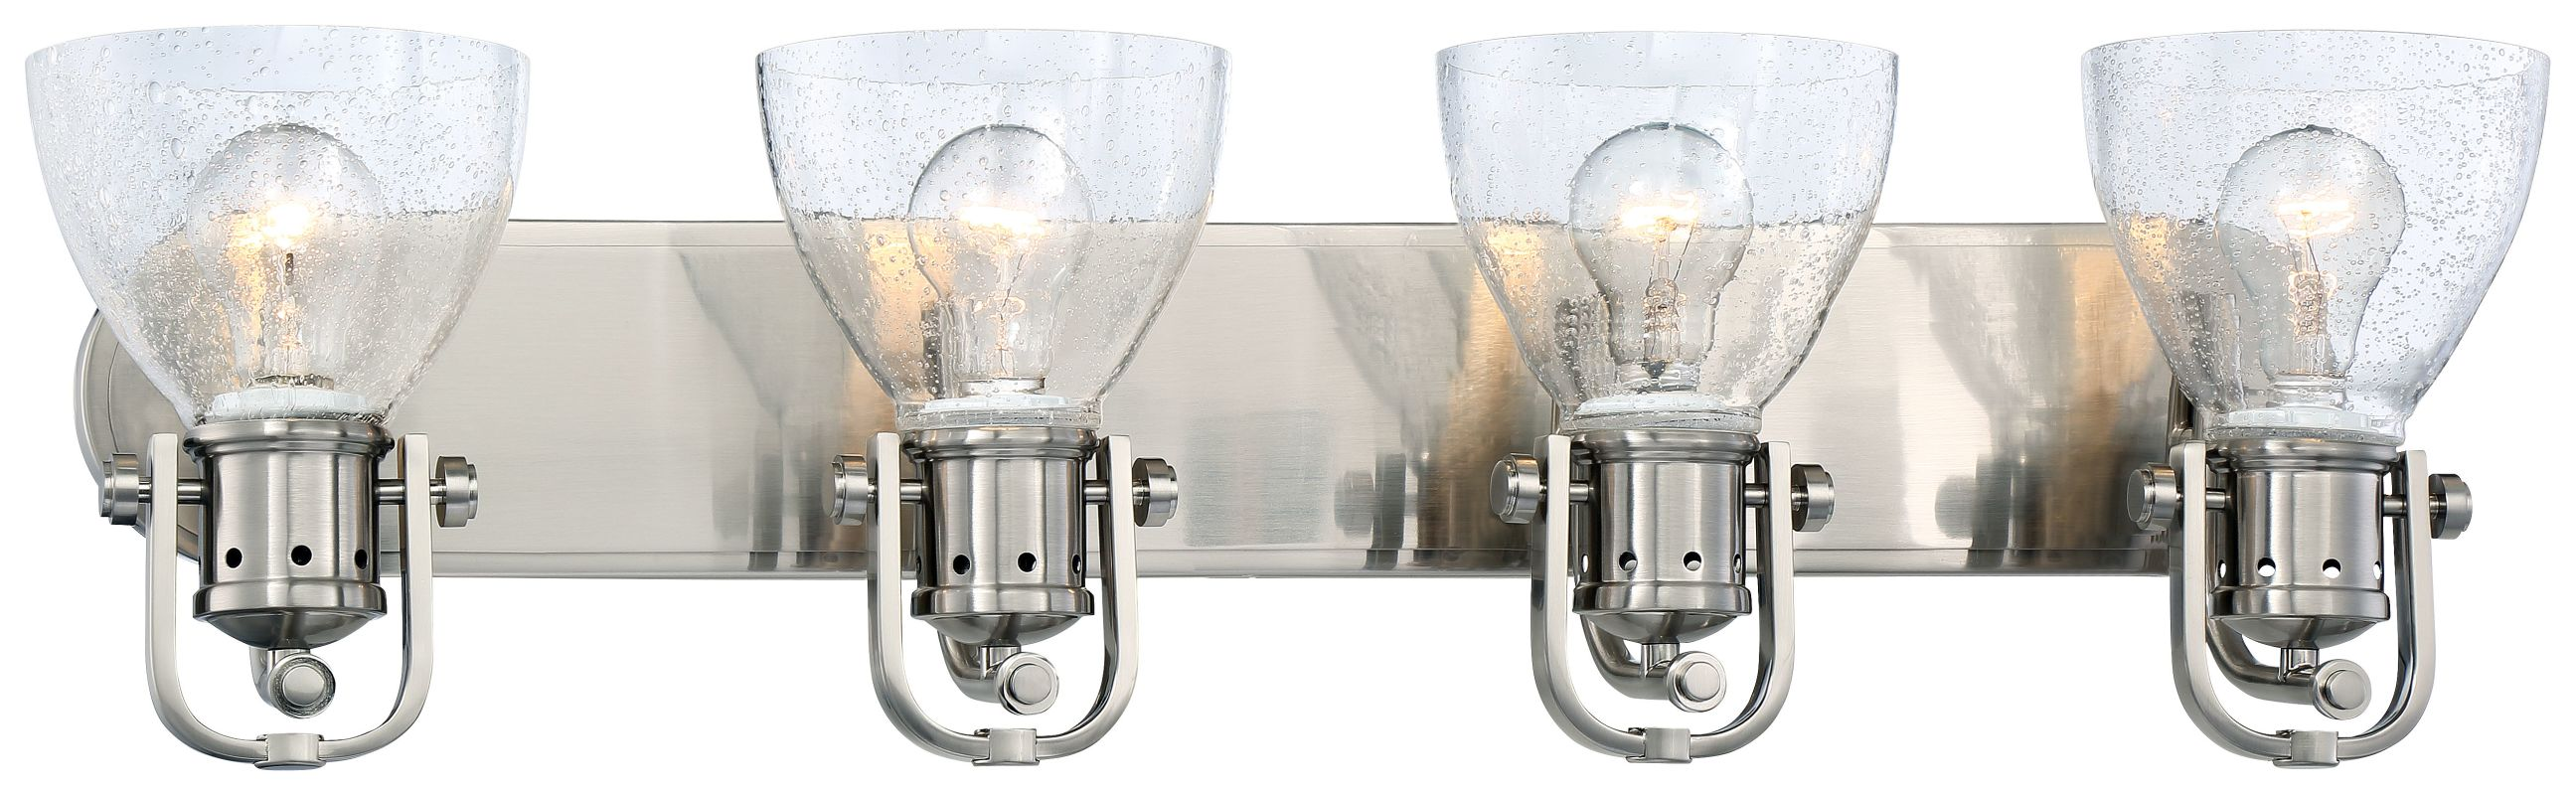 Minka Lavery 3414-84 4 Light Vanity Light from the Seeded Bath Art